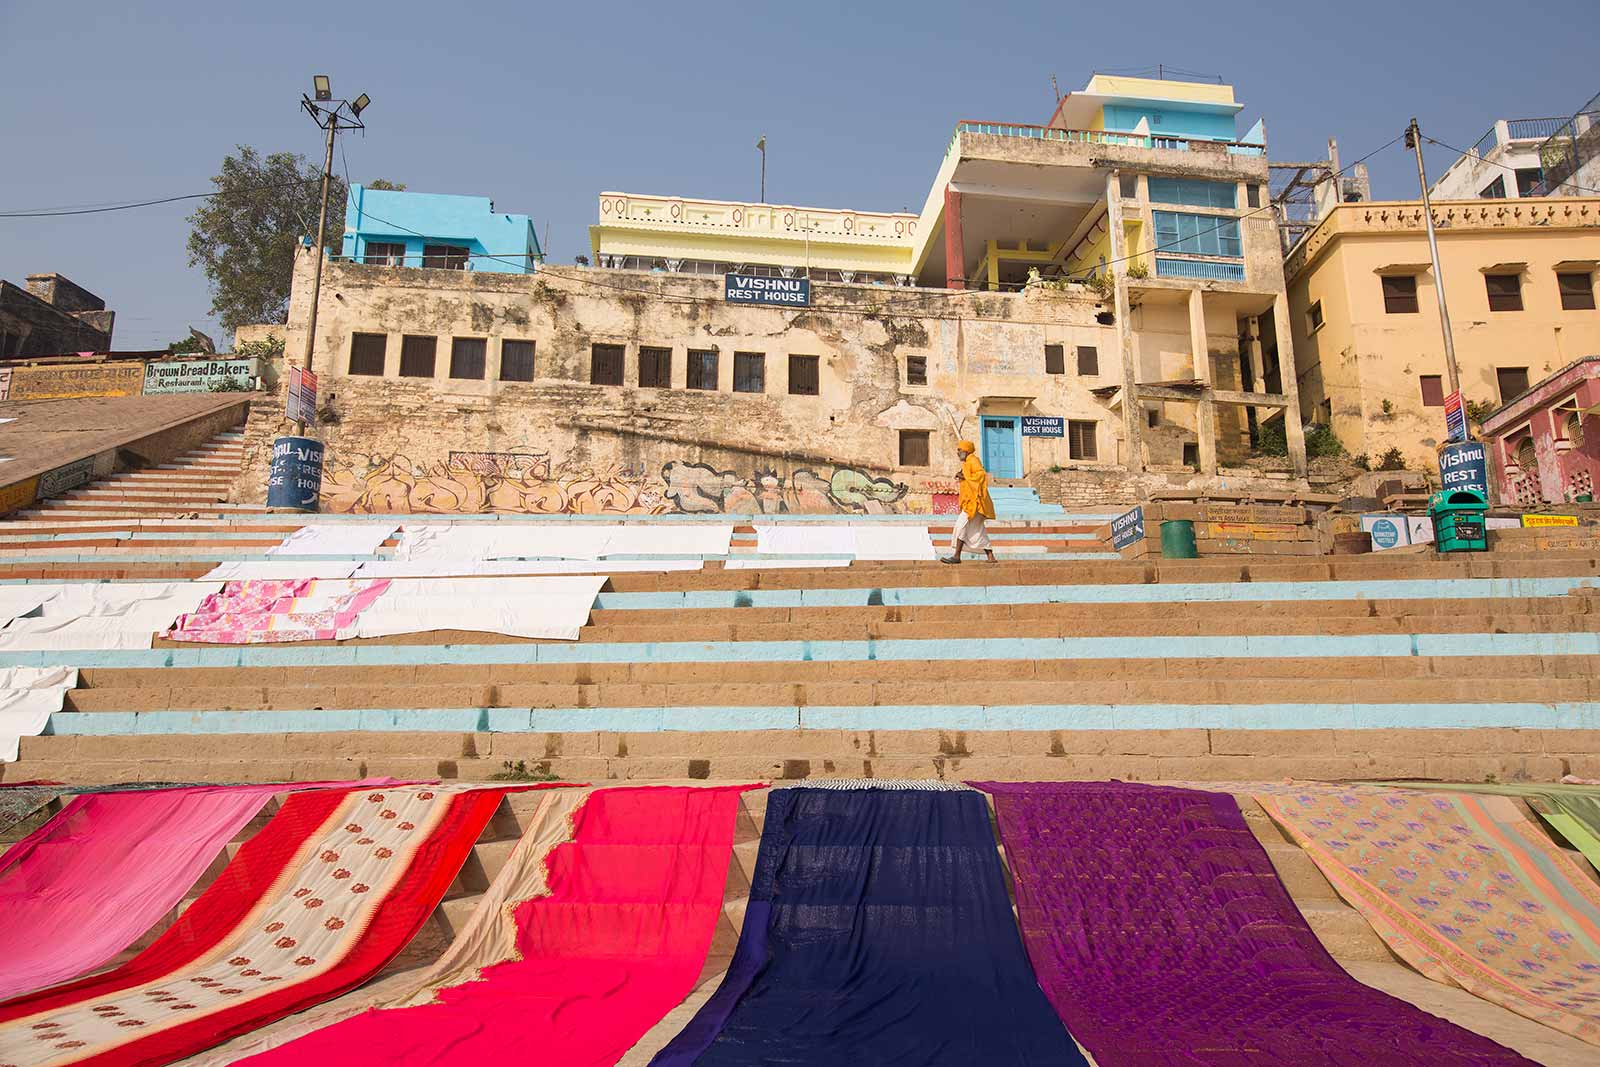 The city of Varanasi has grown along the arc of the Ganges, with the river as a focal point in one direction and growth of the city taking place in a semi-circular direction.